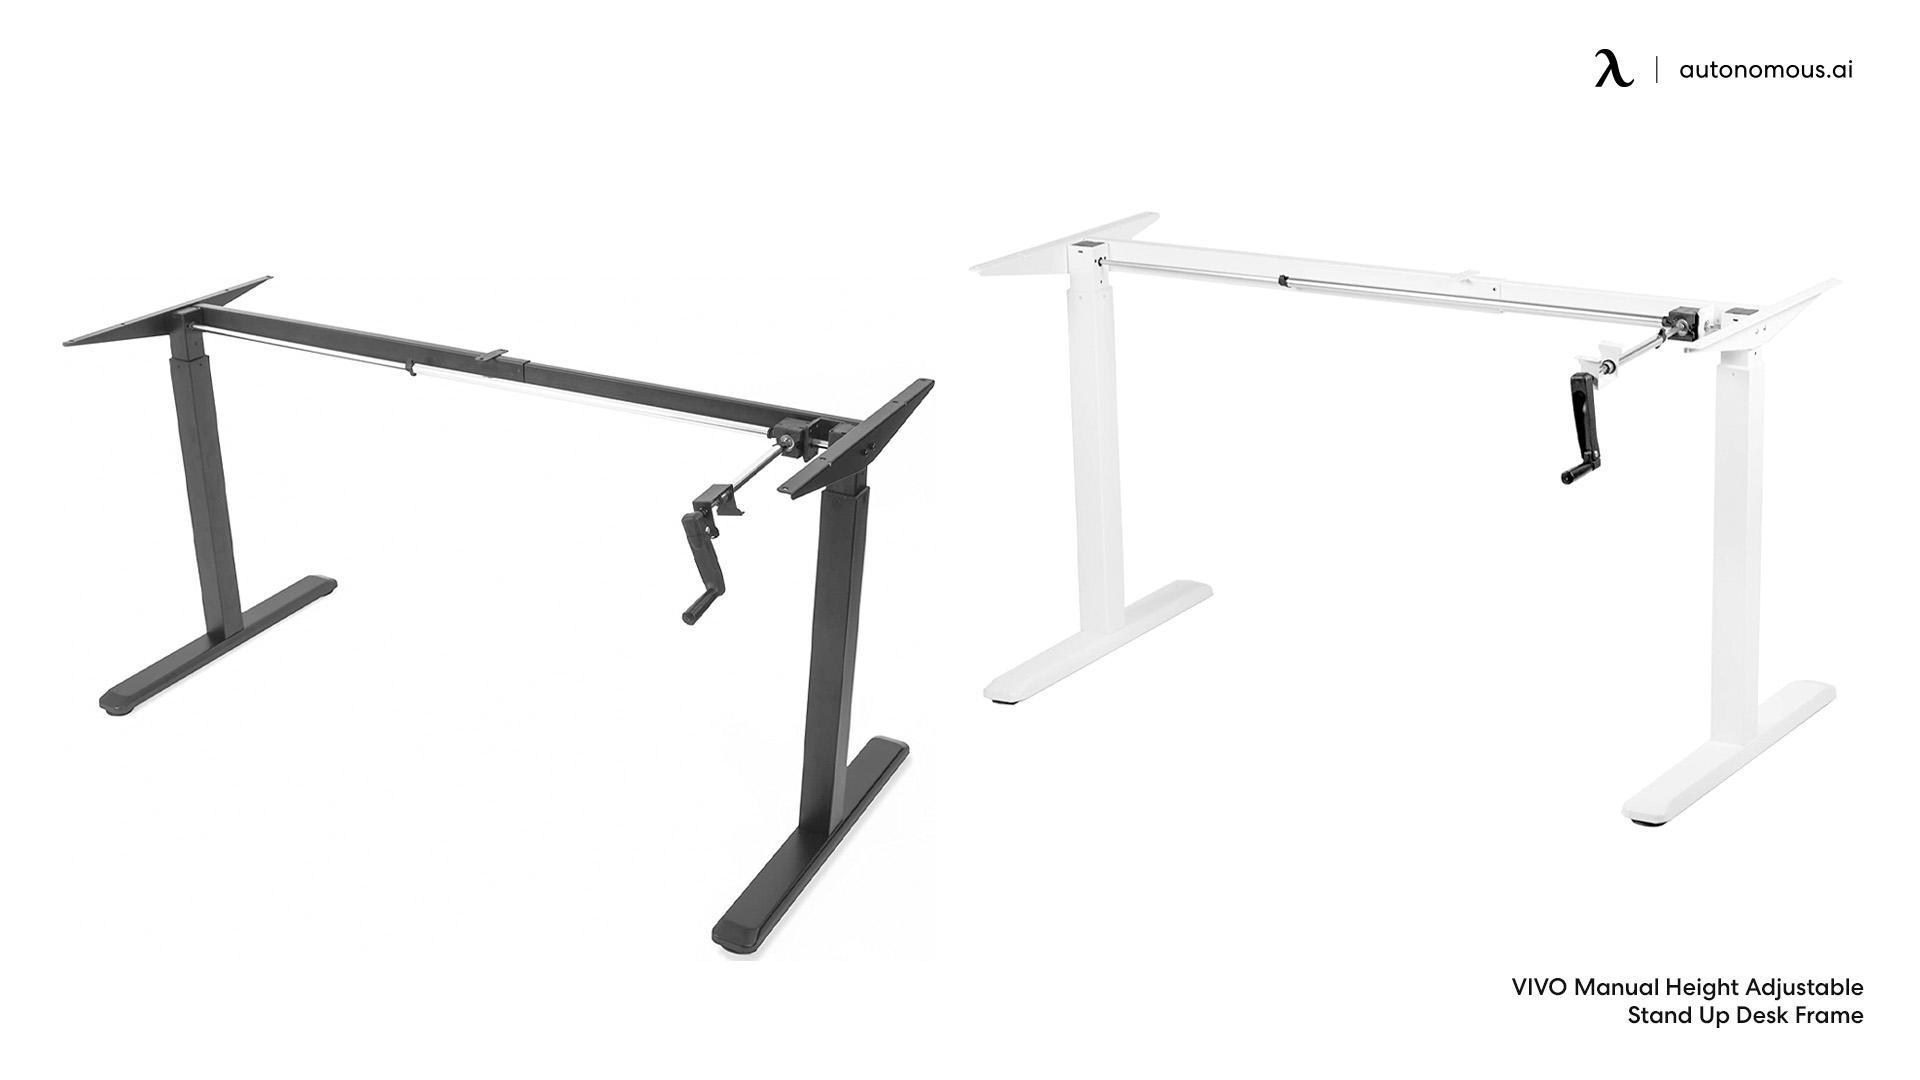 What is a Manual Standing Desk Frame?